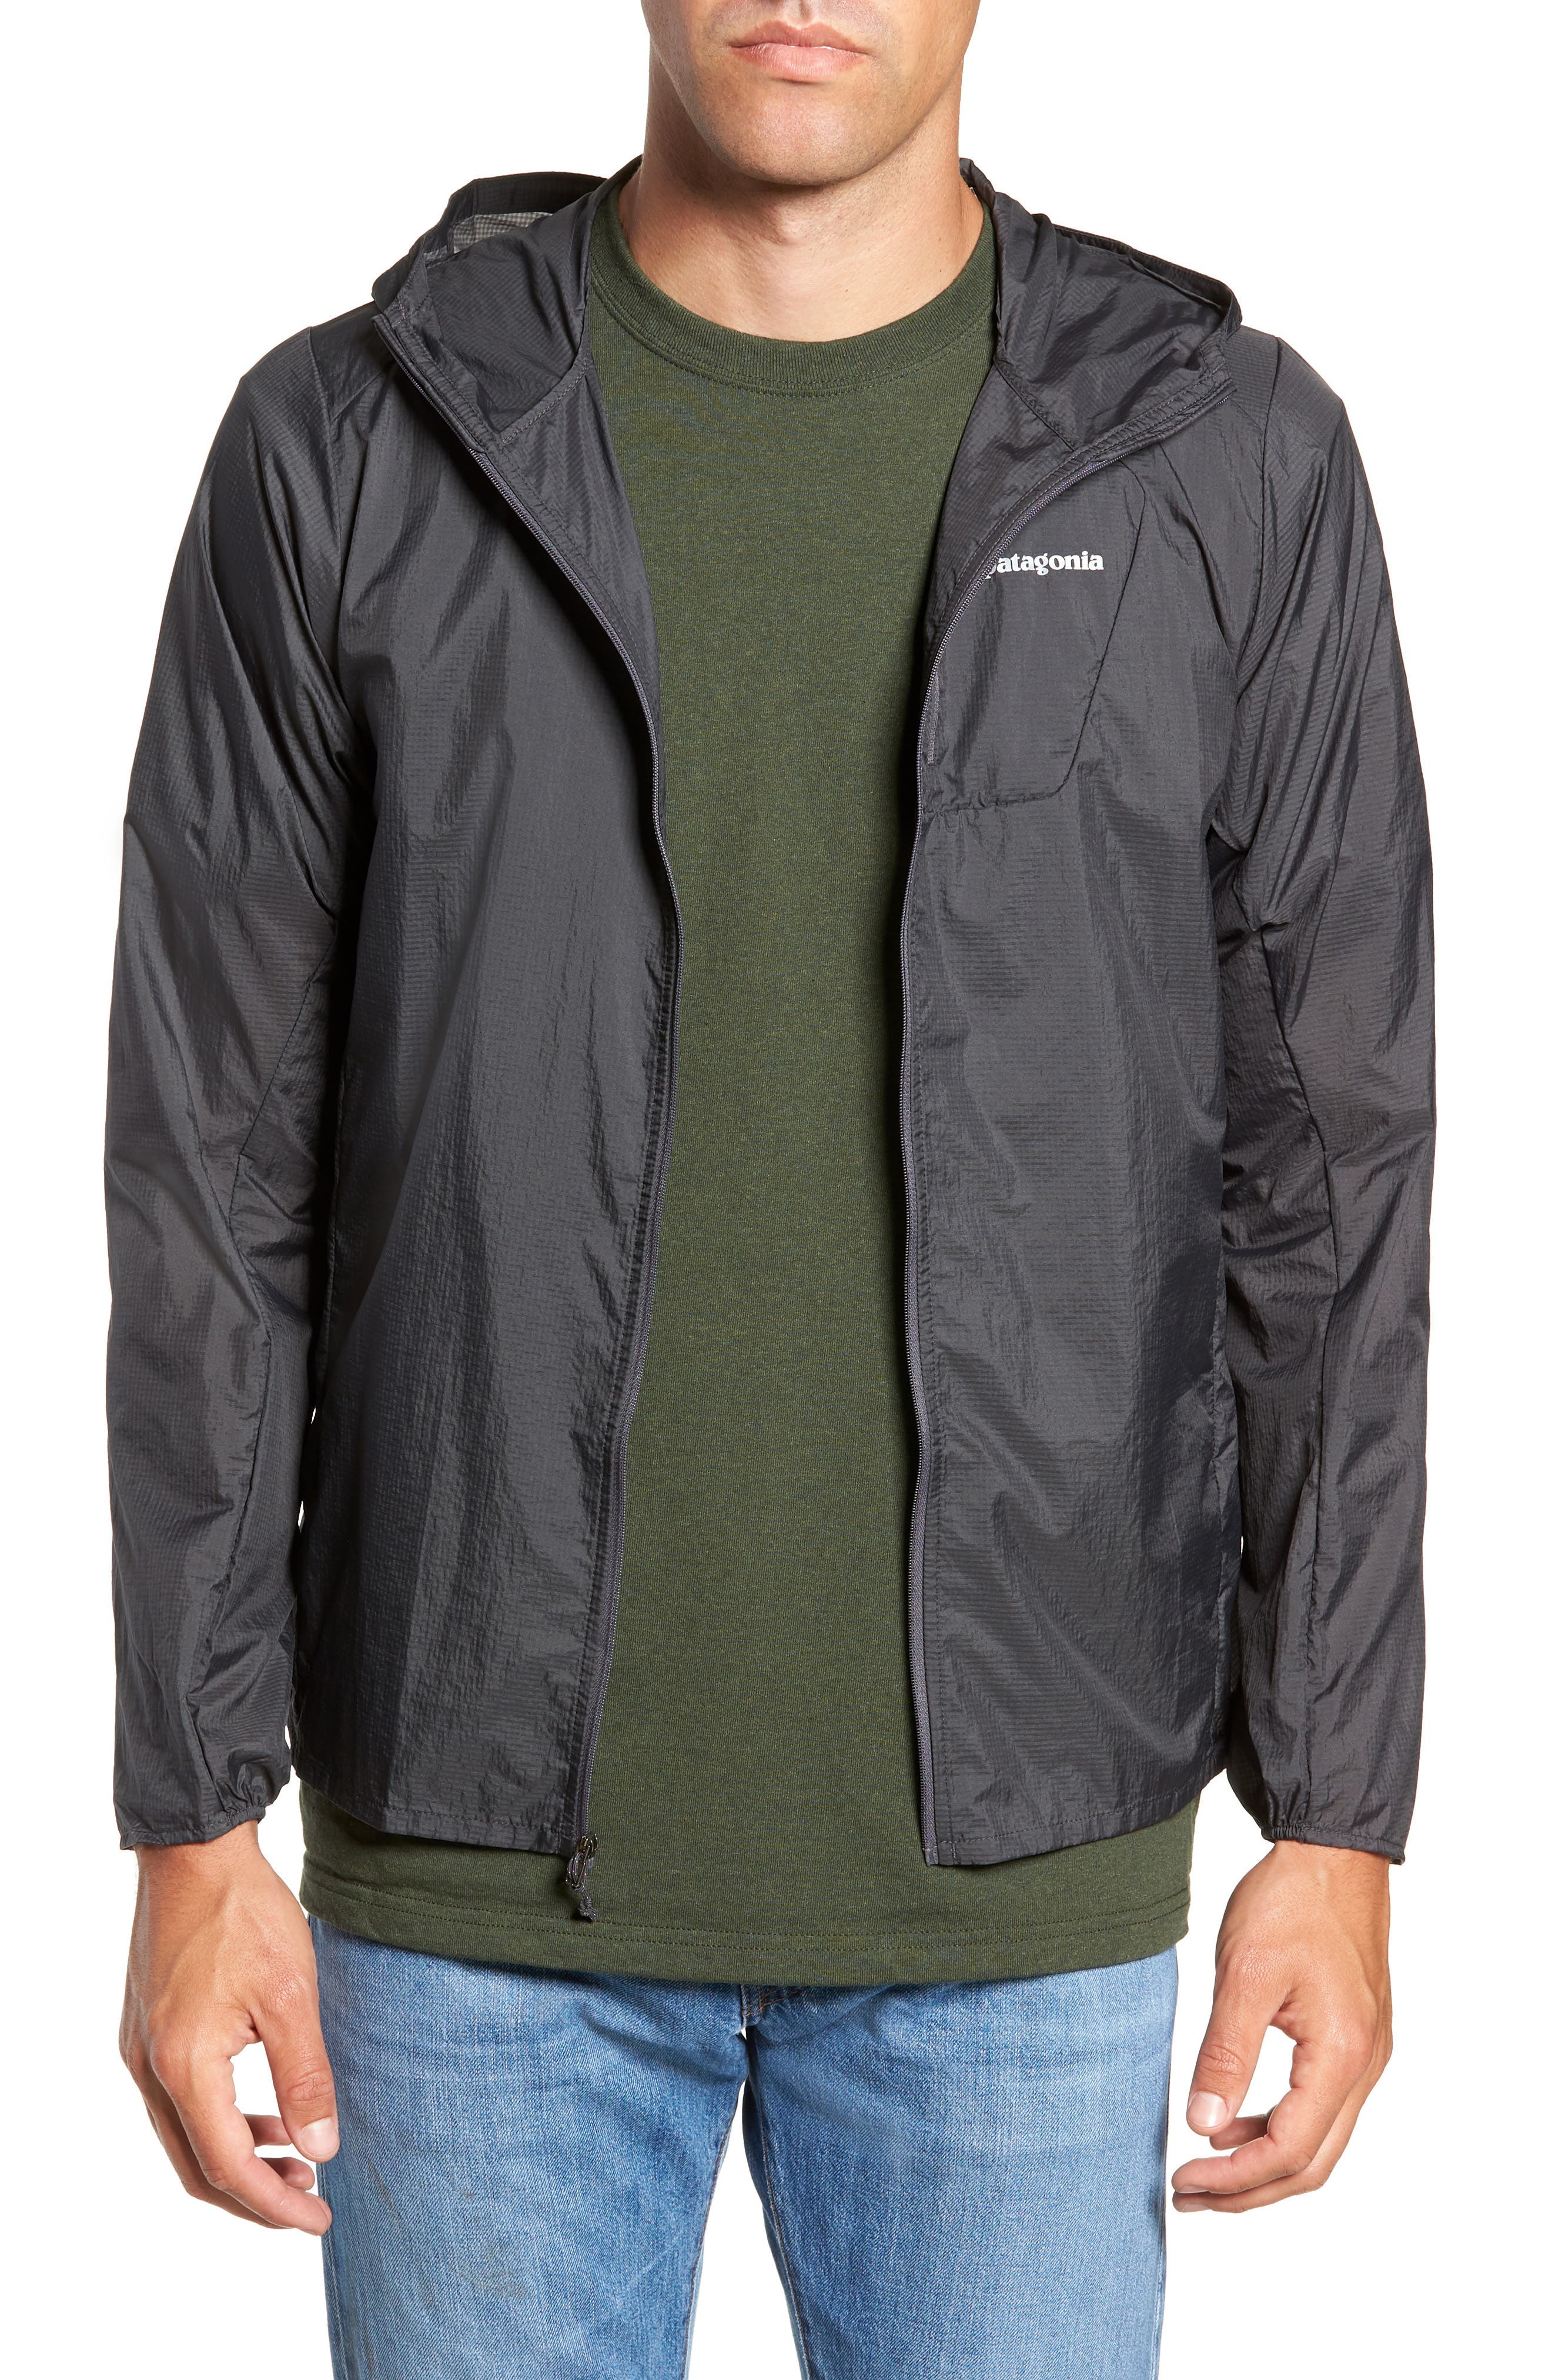 'Houdini' Slim Fit Water Repellent Hooded Jacket,                             Main thumbnail 1, color,                             FORGE GREY/ FORGE GREY